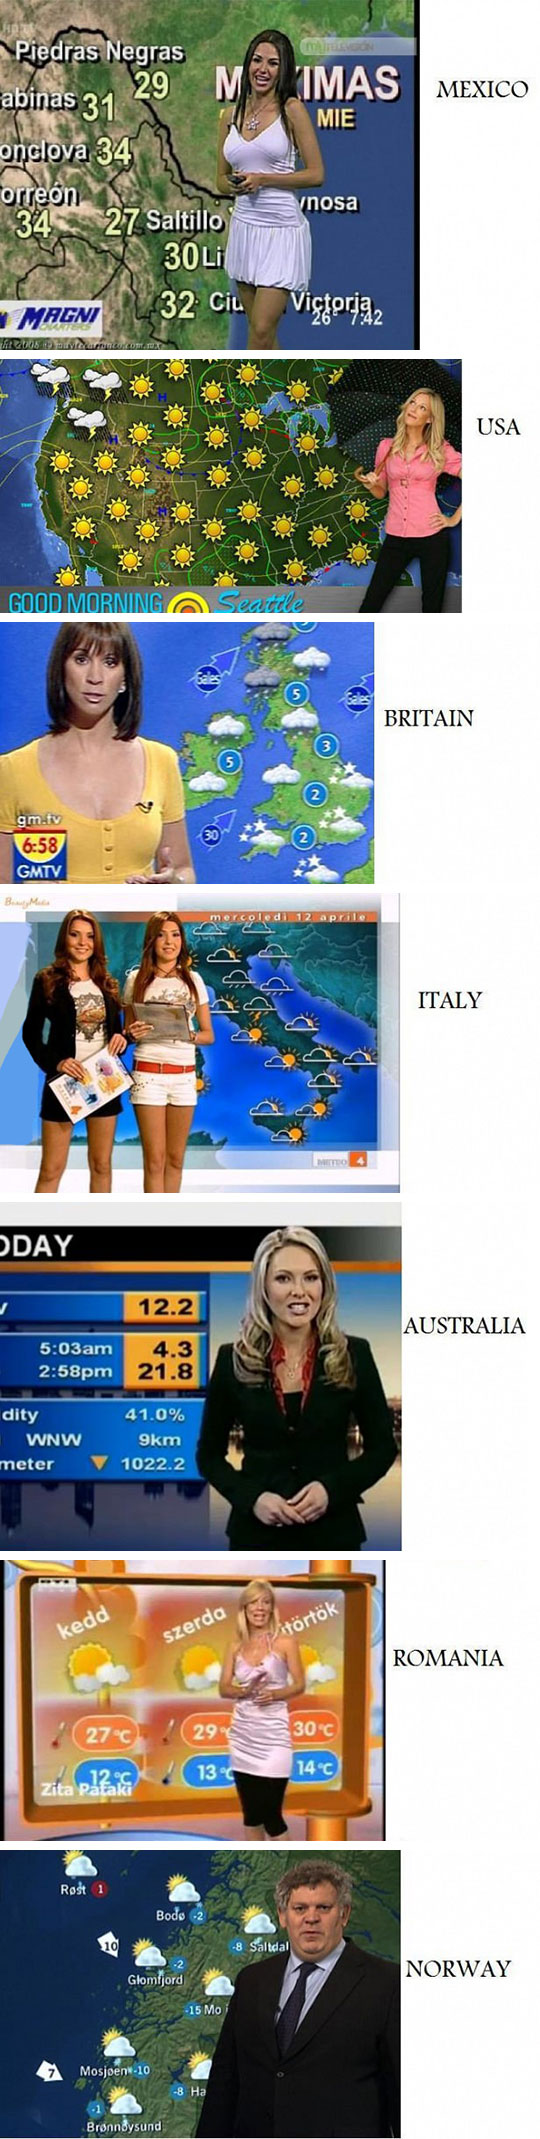 funny-girl-weather-news-ugly-man